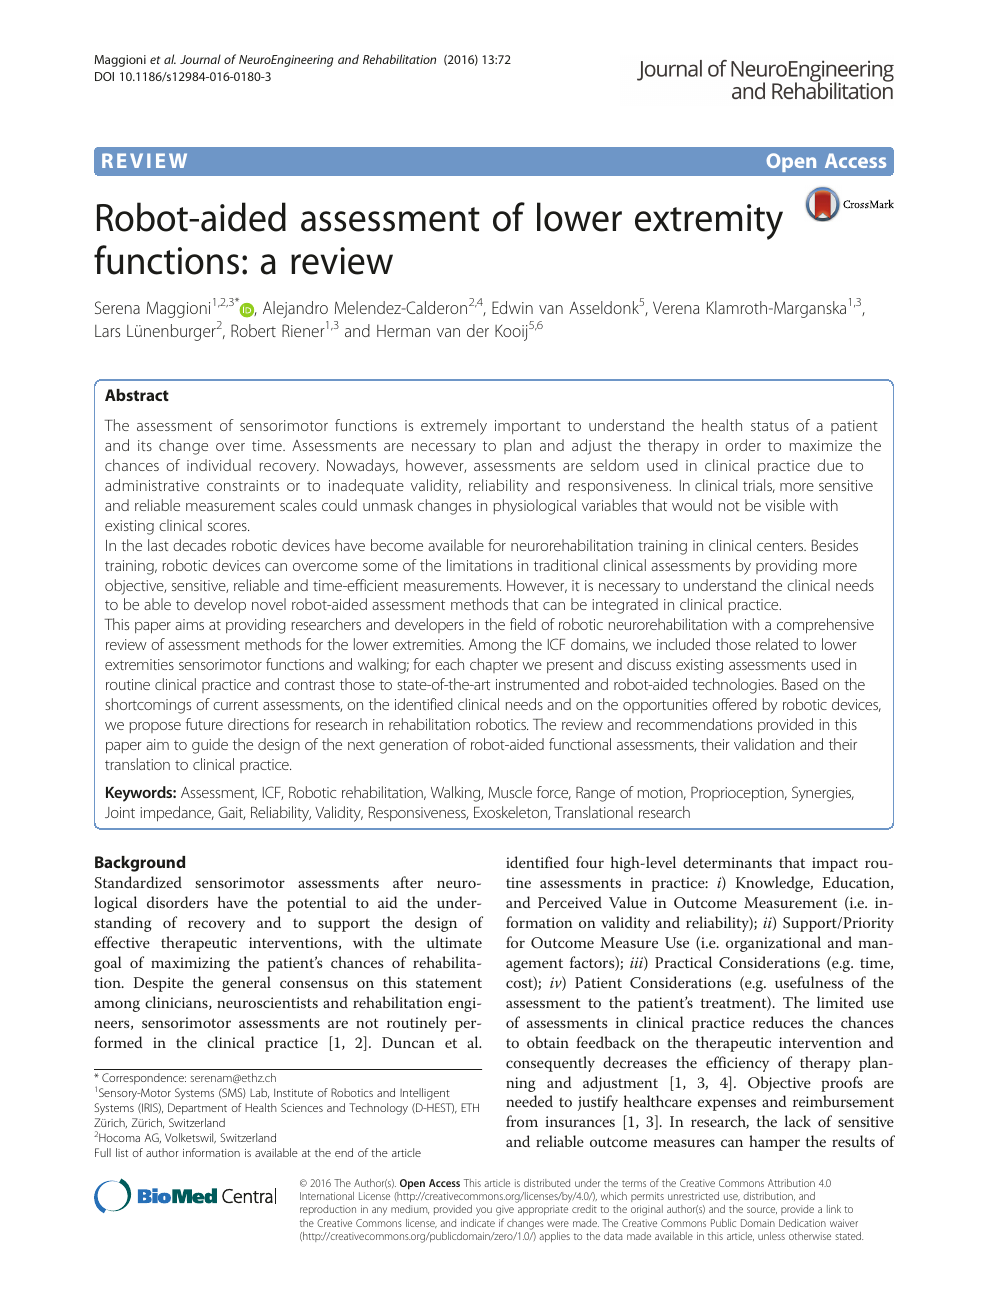 Robot-aided assessment of lower extremity functions: a